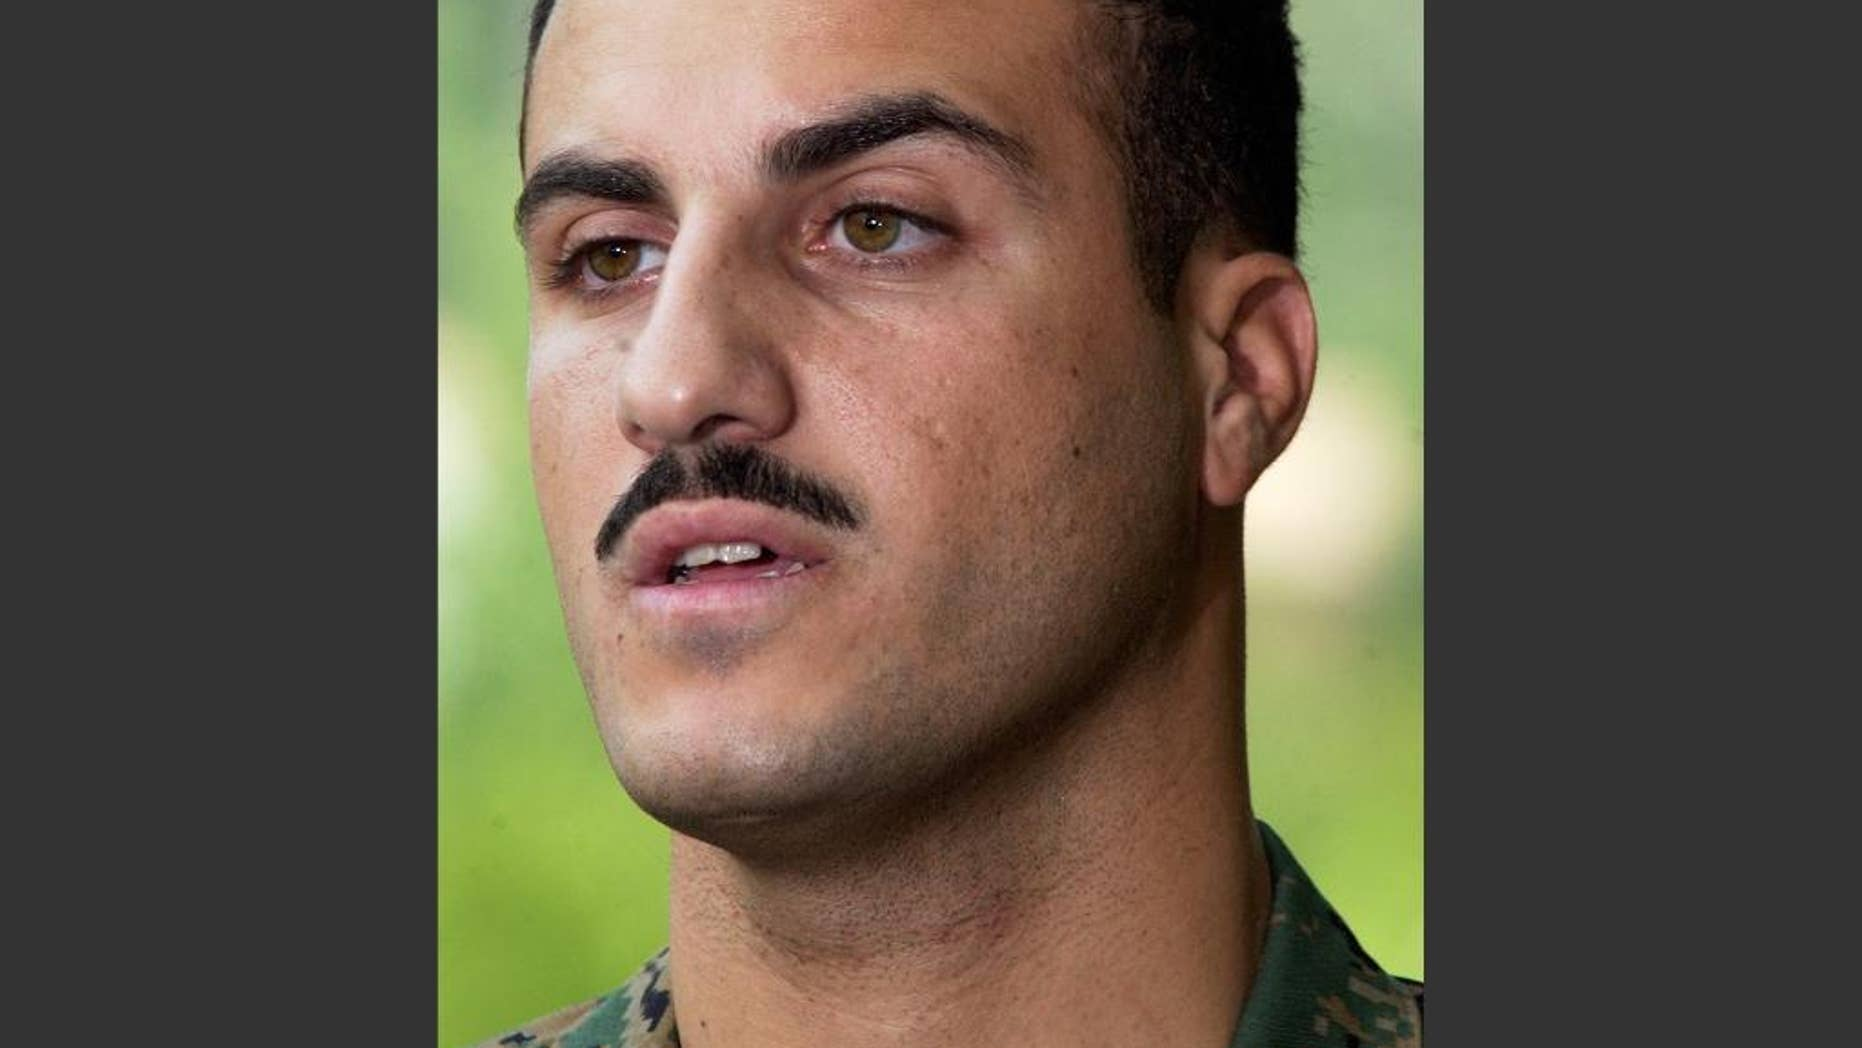 FILE - In this July 19, 2004 file photo, Marine Cpl. Wassef Ali Hassoun makes a statement to the media outside Quantico Marine Base in Quantico, Va. Marine spokesman Lt. Col. Cliff Gilmore said Wednesday, Nov. 19, 2014, that a judge decided last week to deny Cpl. Hassoun's request for another Article 32 hearing, the military equivalent of a grand jury hearing. Gilmore said Hassoun's general court-martial is scheduled to begin at Camp Lejeune on Dec. 8 before the judge, Marine Maj. Nicholas Martz. (AP Photo/Steve Helber, File)